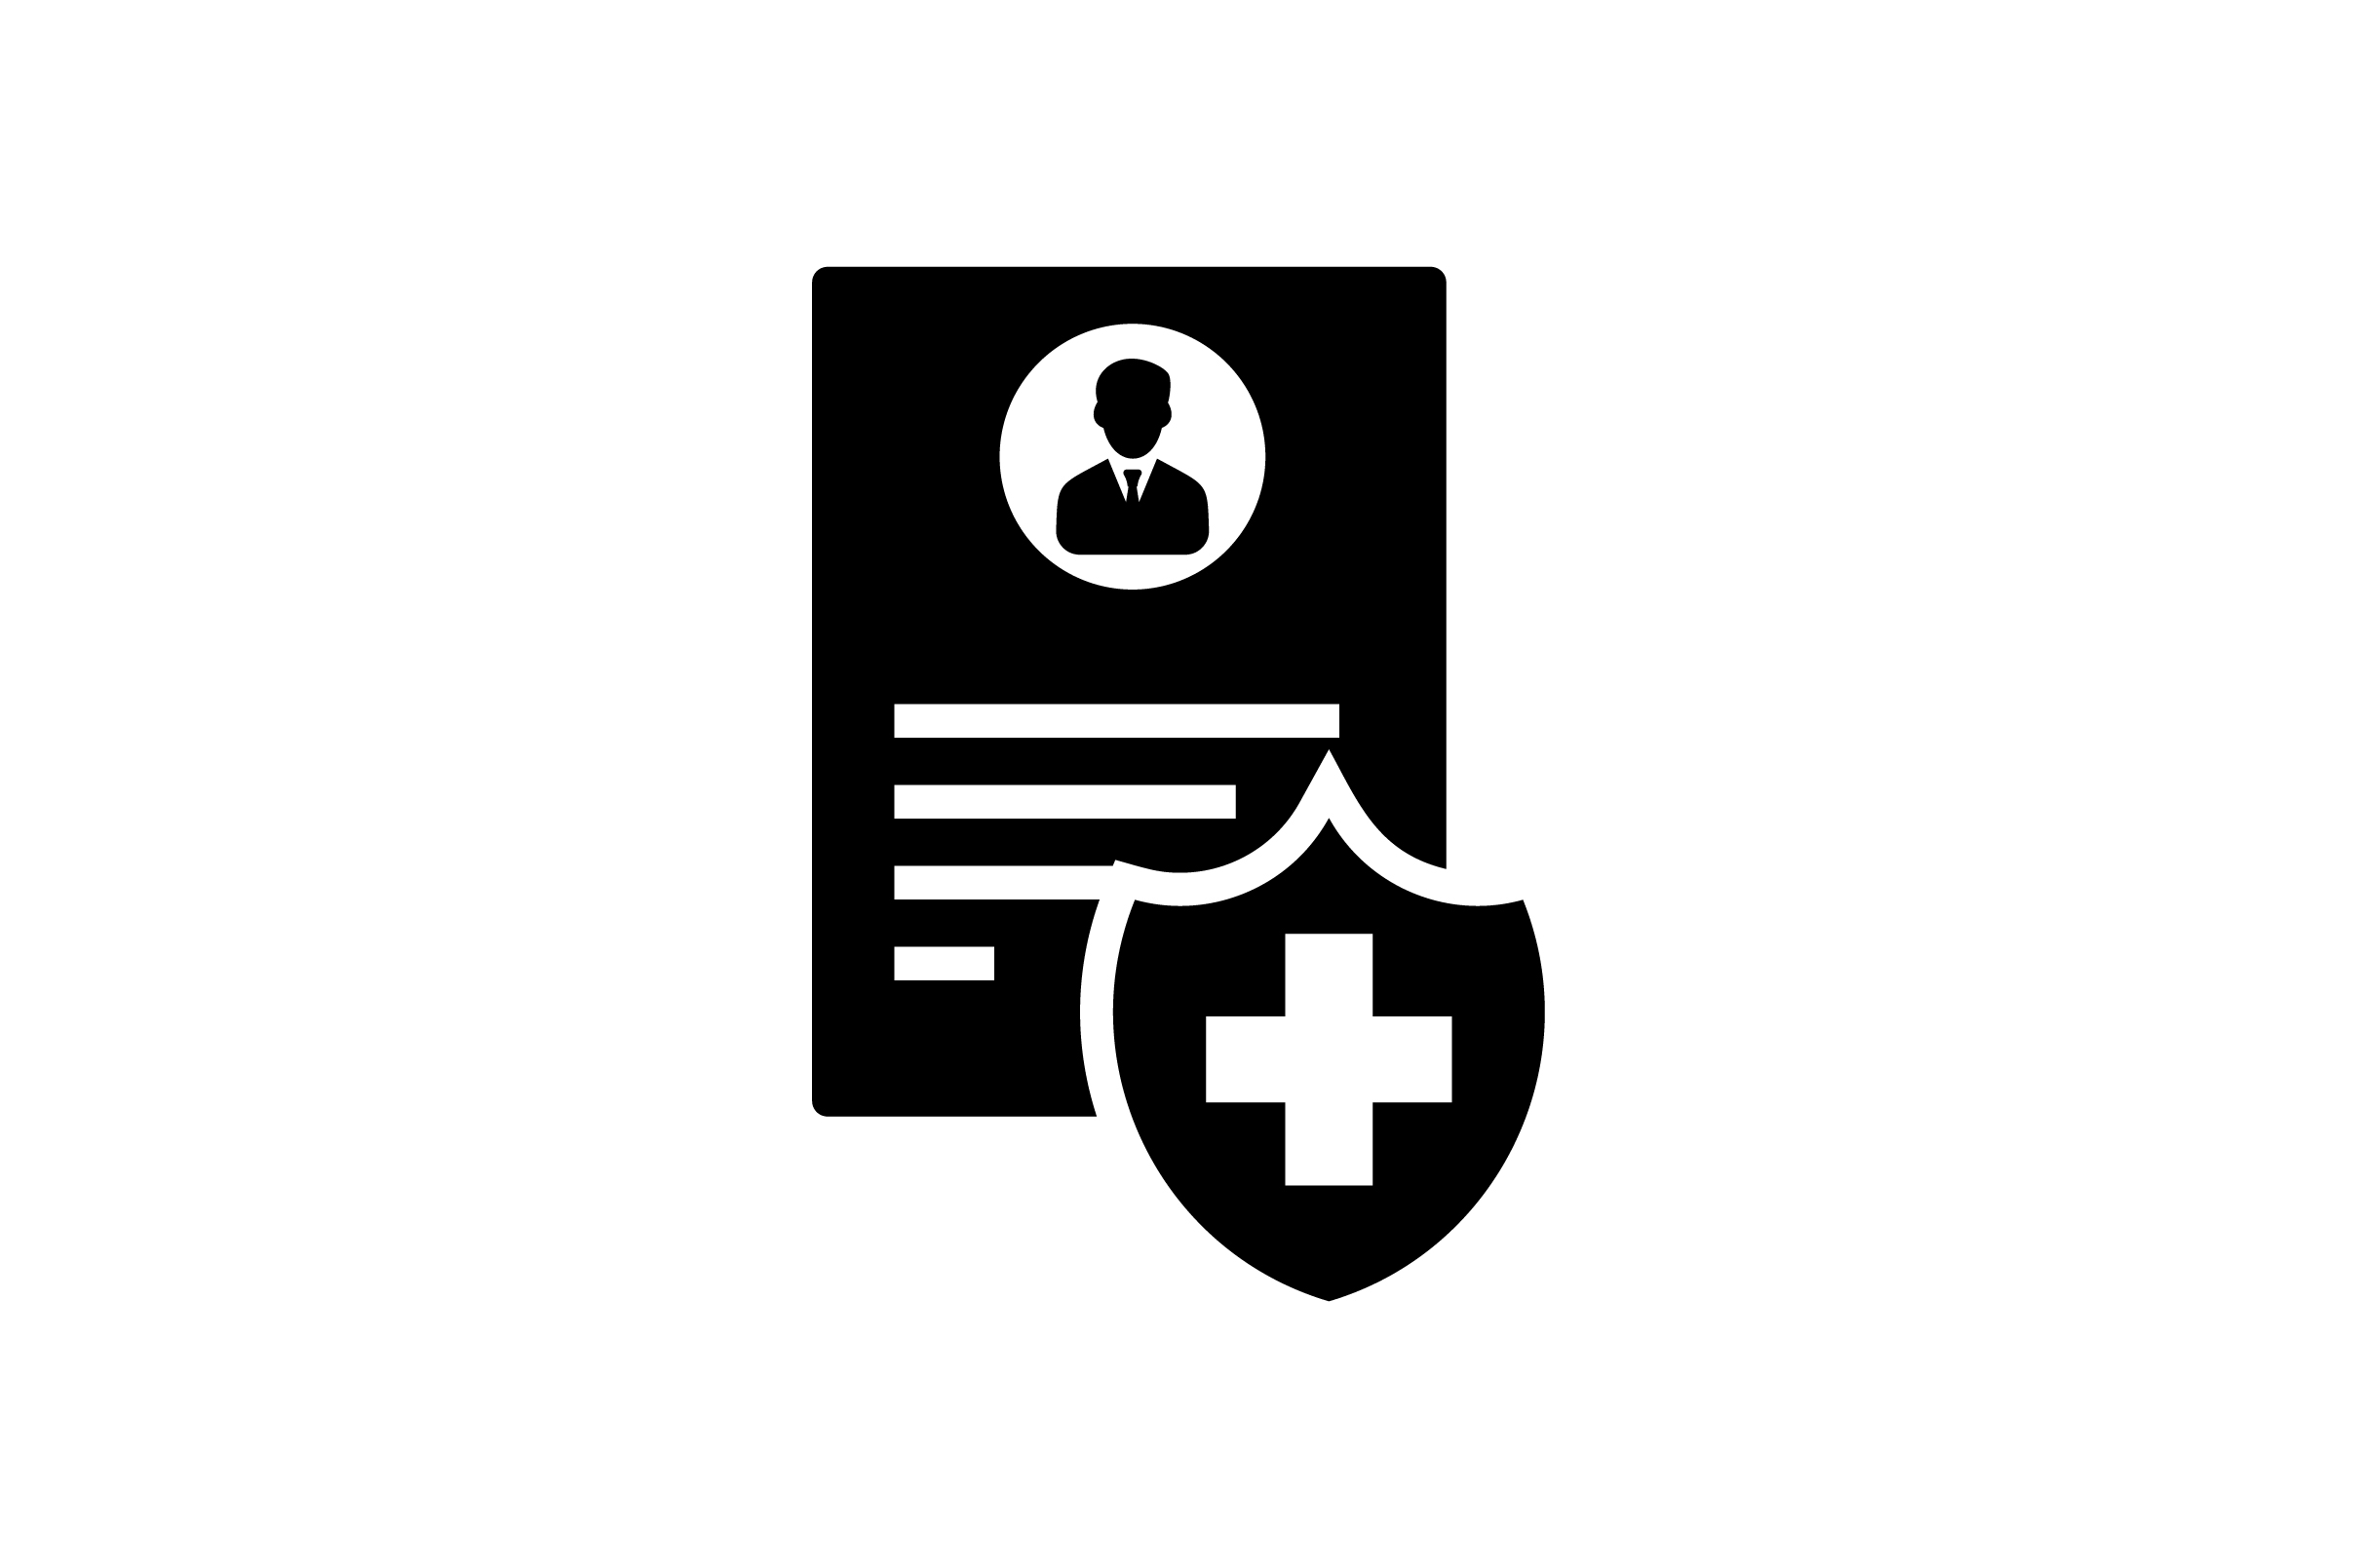 Download Free Medical Document Glyph Vector Icon Graphic By Riduwan Molla for Cricut Explore, Silhouette and other cutting machines.